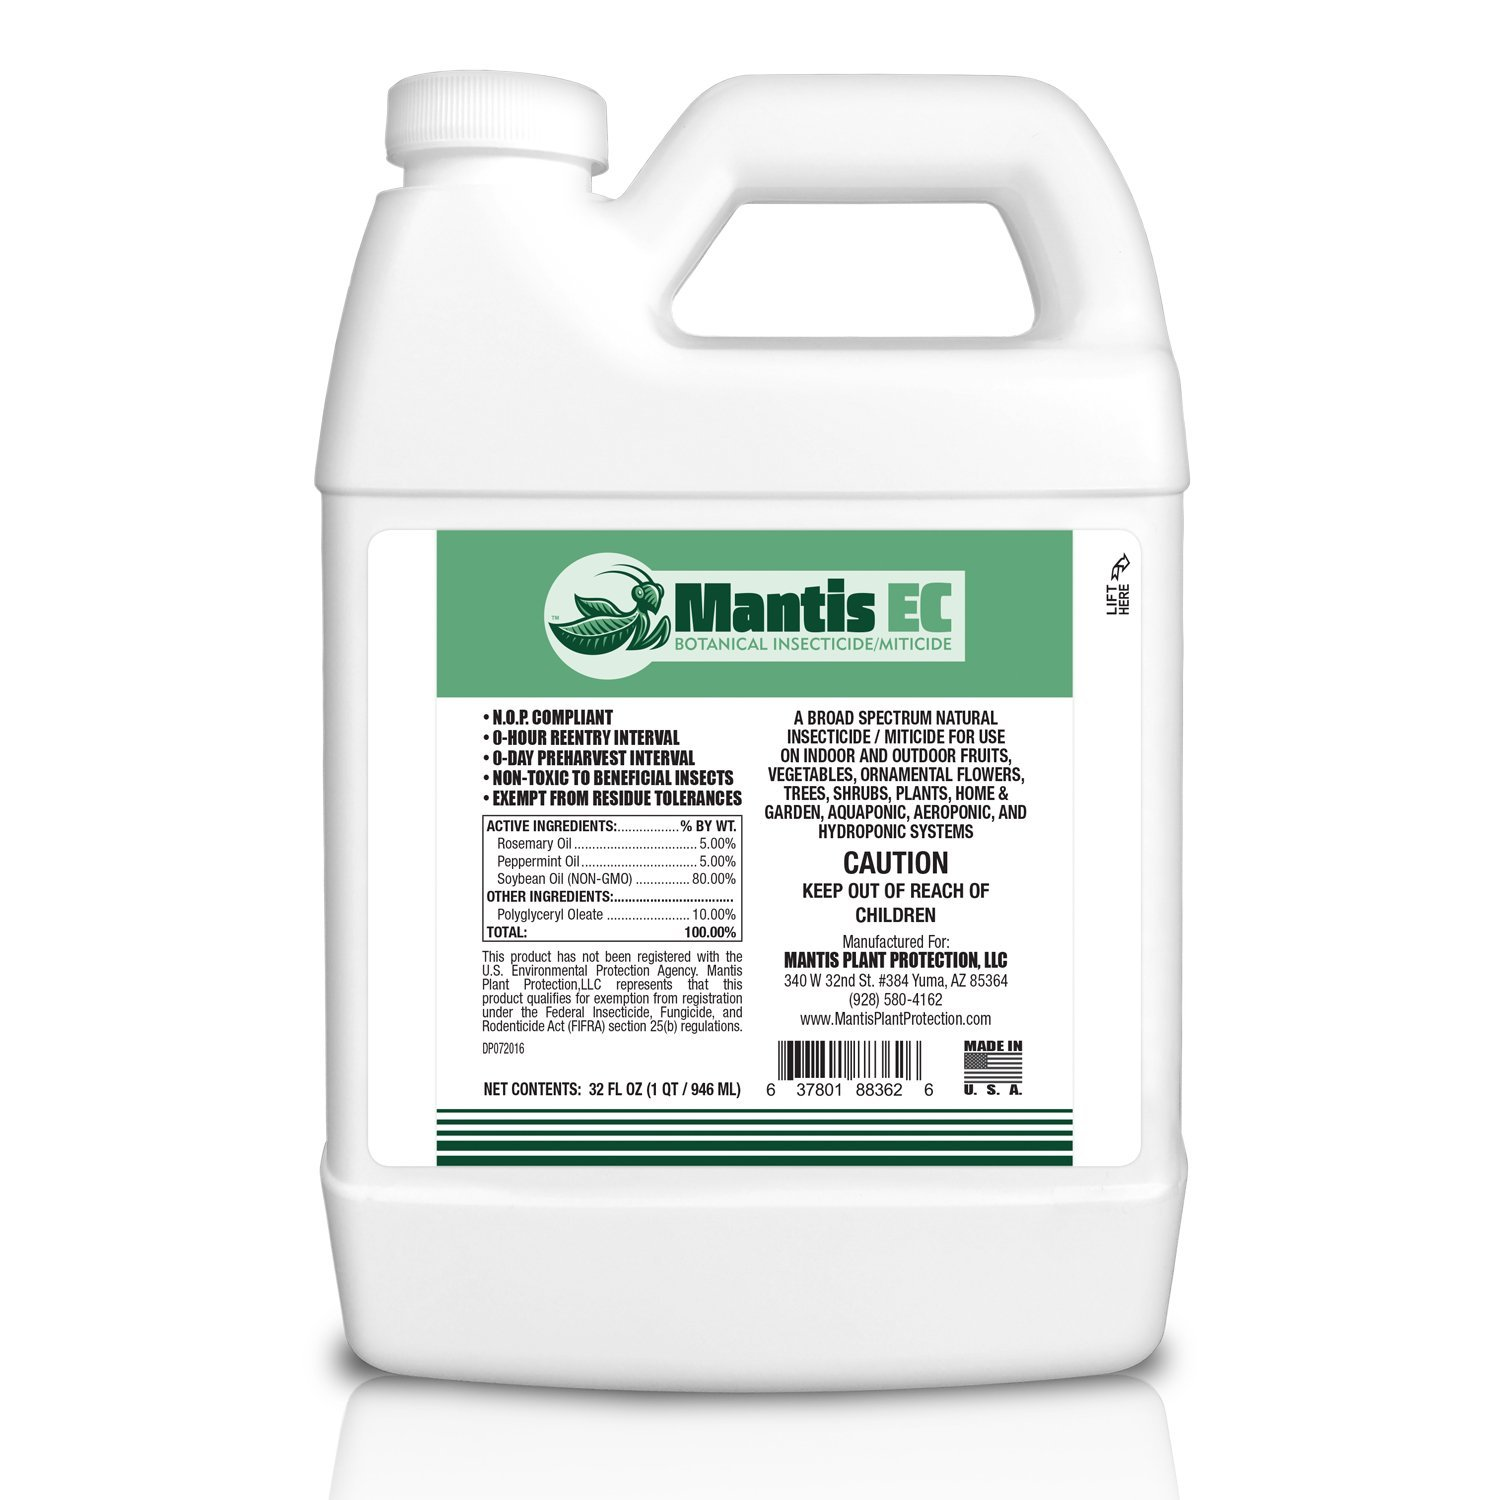 Mantis EC Botanical Insecticide Miticide Concentrate